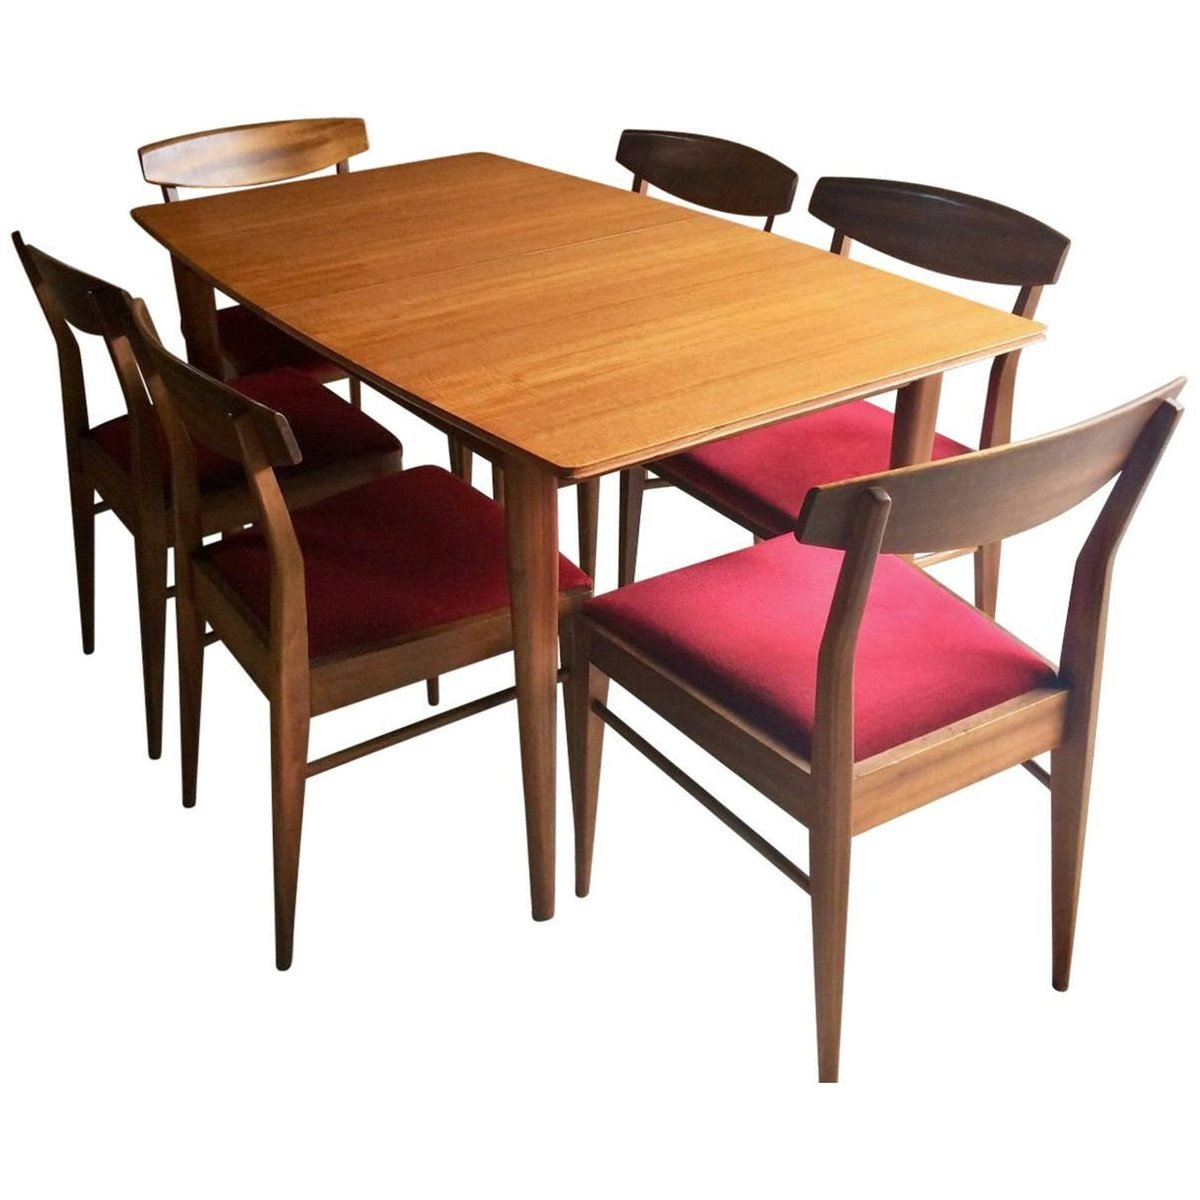 solid teak extending dining table and 6 chairs from mcintosh 1970s for sale at pamono. Black Bedroom Furniture Sets. Home Design Ideas